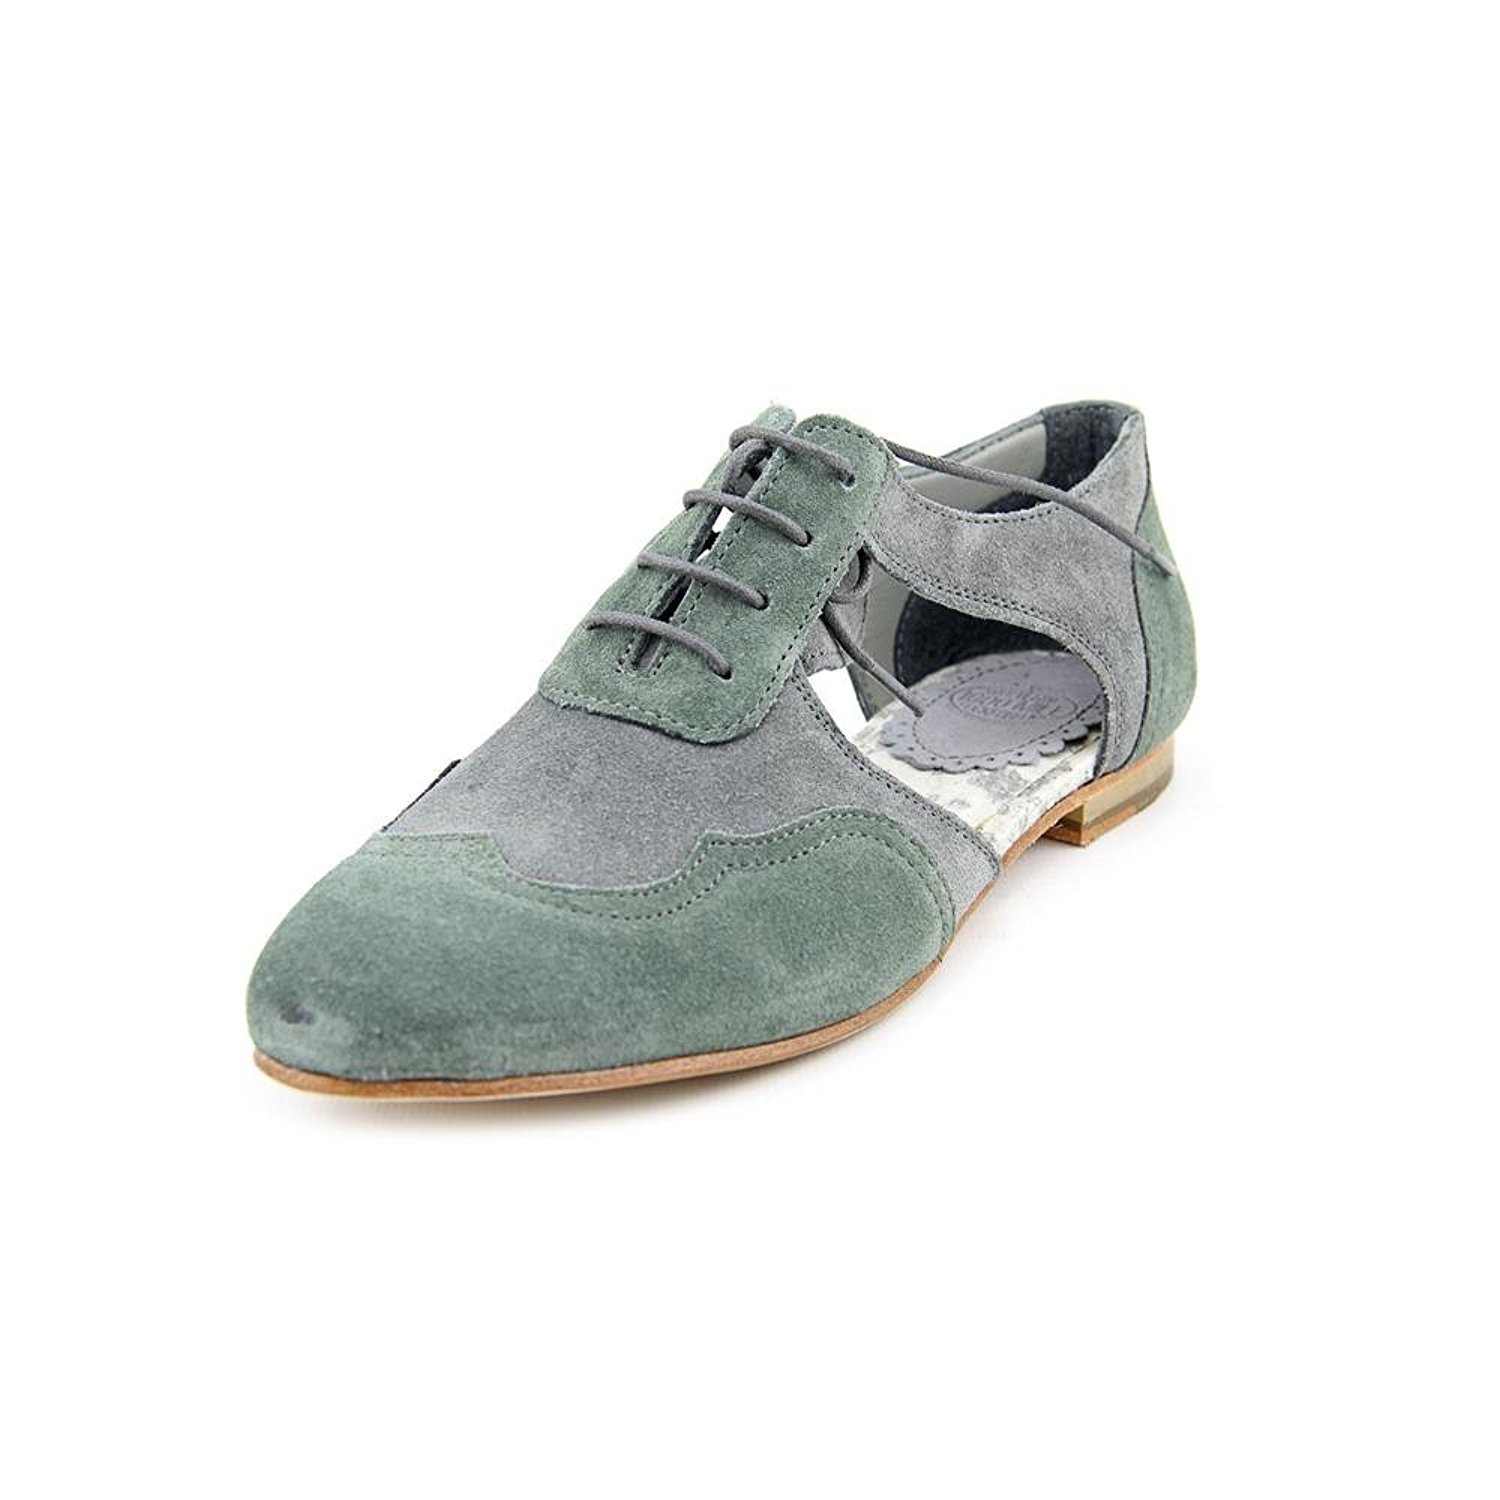 Wolverine 1000 Mile Women's Doris Lace Up Oxfords,Gray,6.5 B by Samantha Pleet for Wolverine